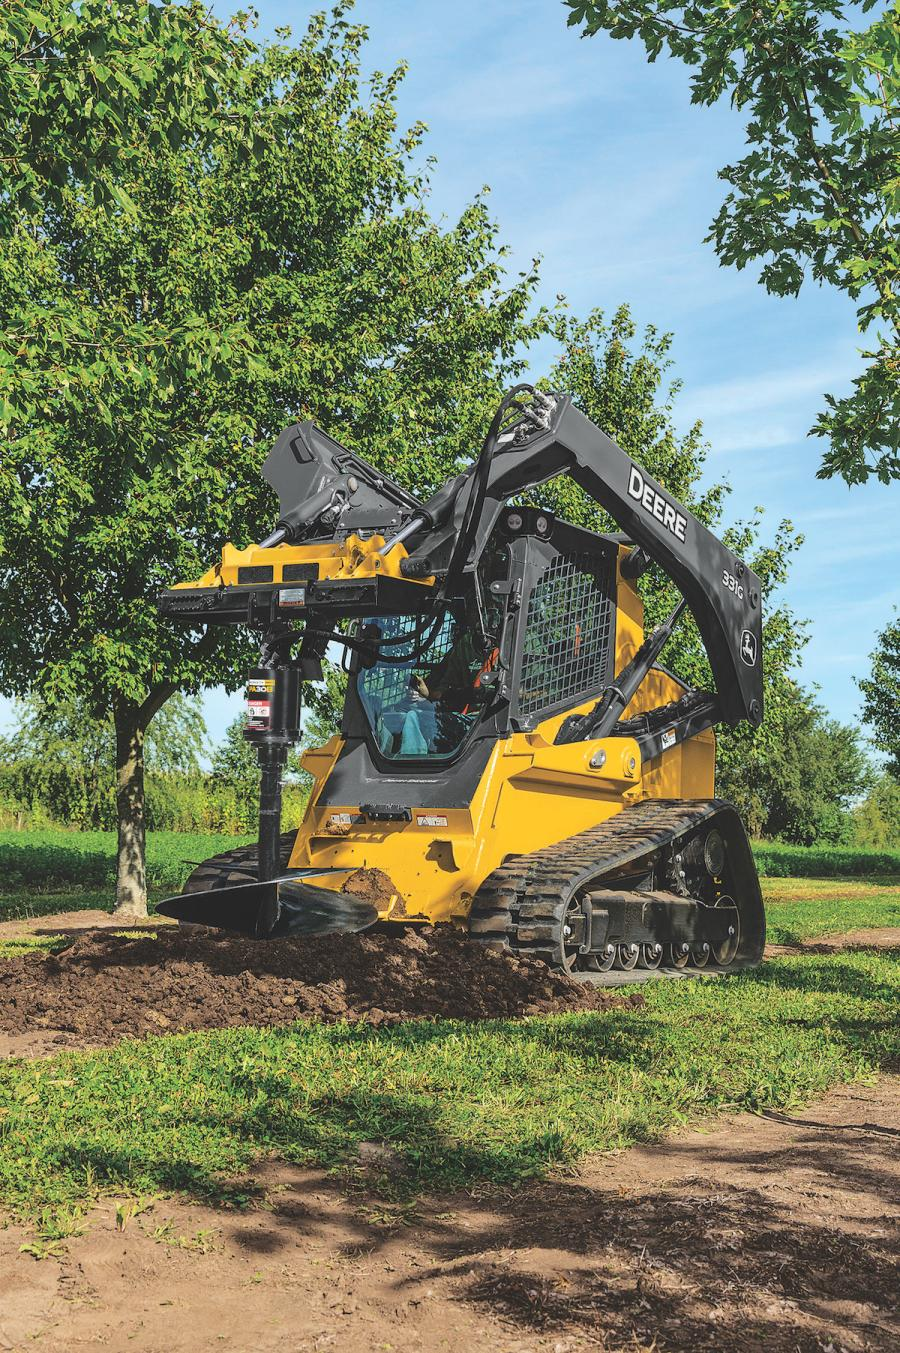 The new PA15B and PA30B augers are designed for longer product life to better meet customer needs and application uses. Like all Worksite Pro attachments, these solutions are optimized to work with John Deere skid steers, compact track loaders (CTLs), compact excavators and compact four-wheel-drive loaders, along with most competitive models.